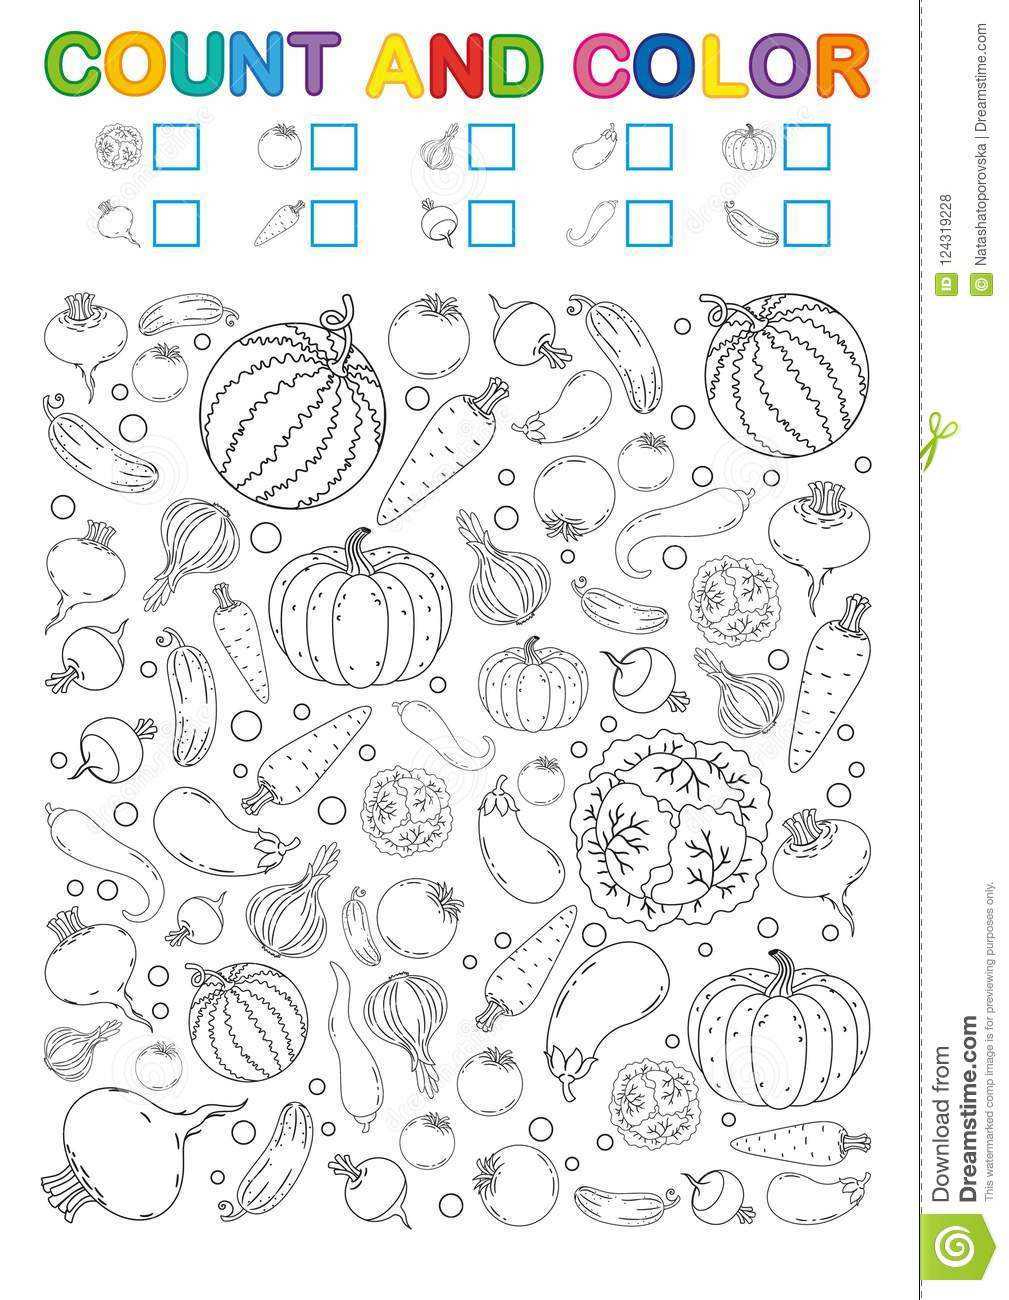 Vegetable Worksheets for Preschool Coloring Book Page Count and Color Printable Worksheet for